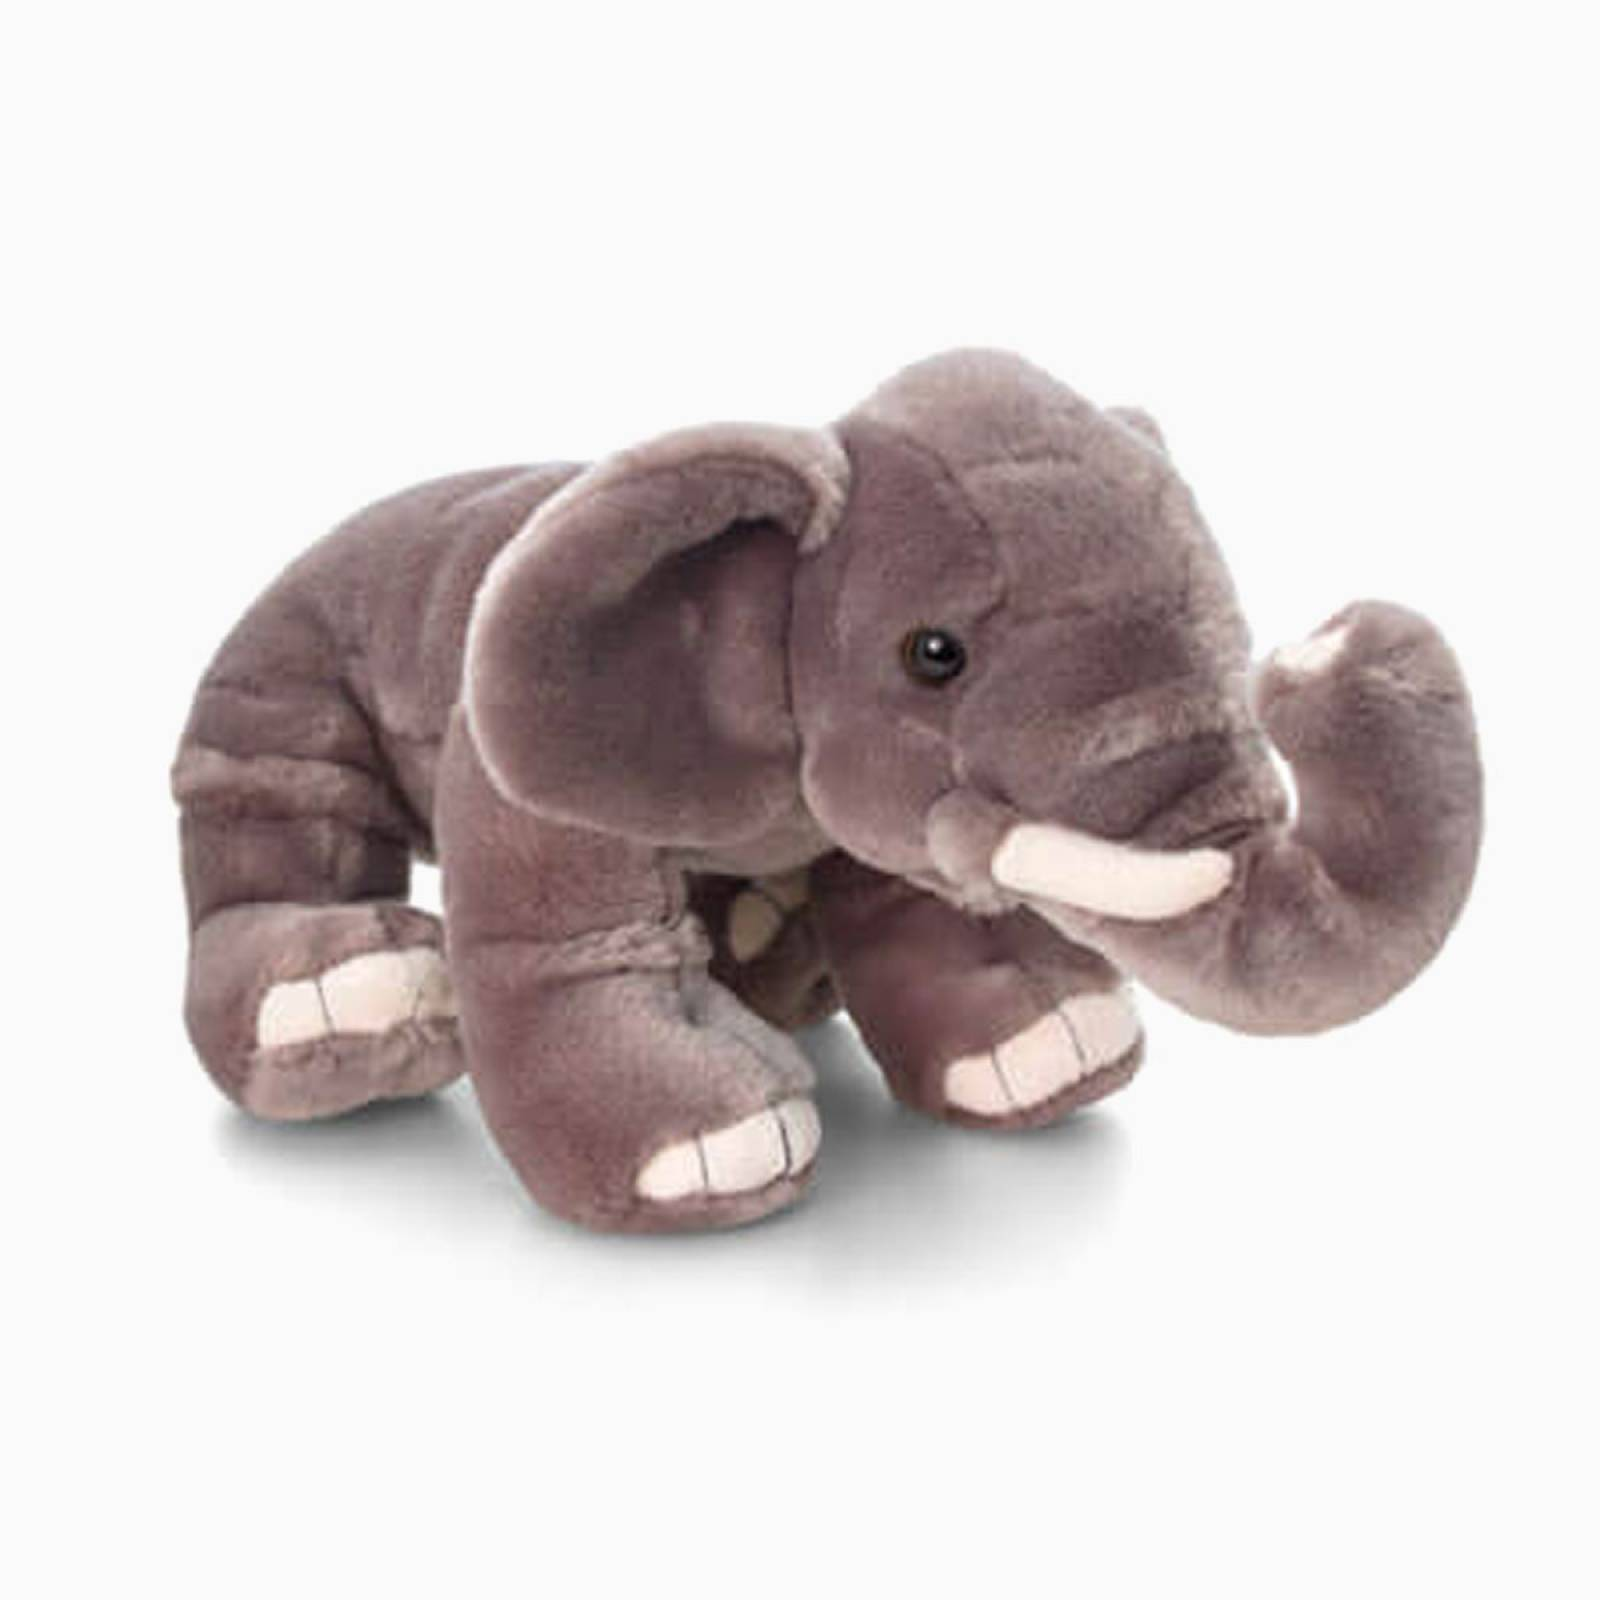 Elephant Soft Toy 30cm. thumbnails